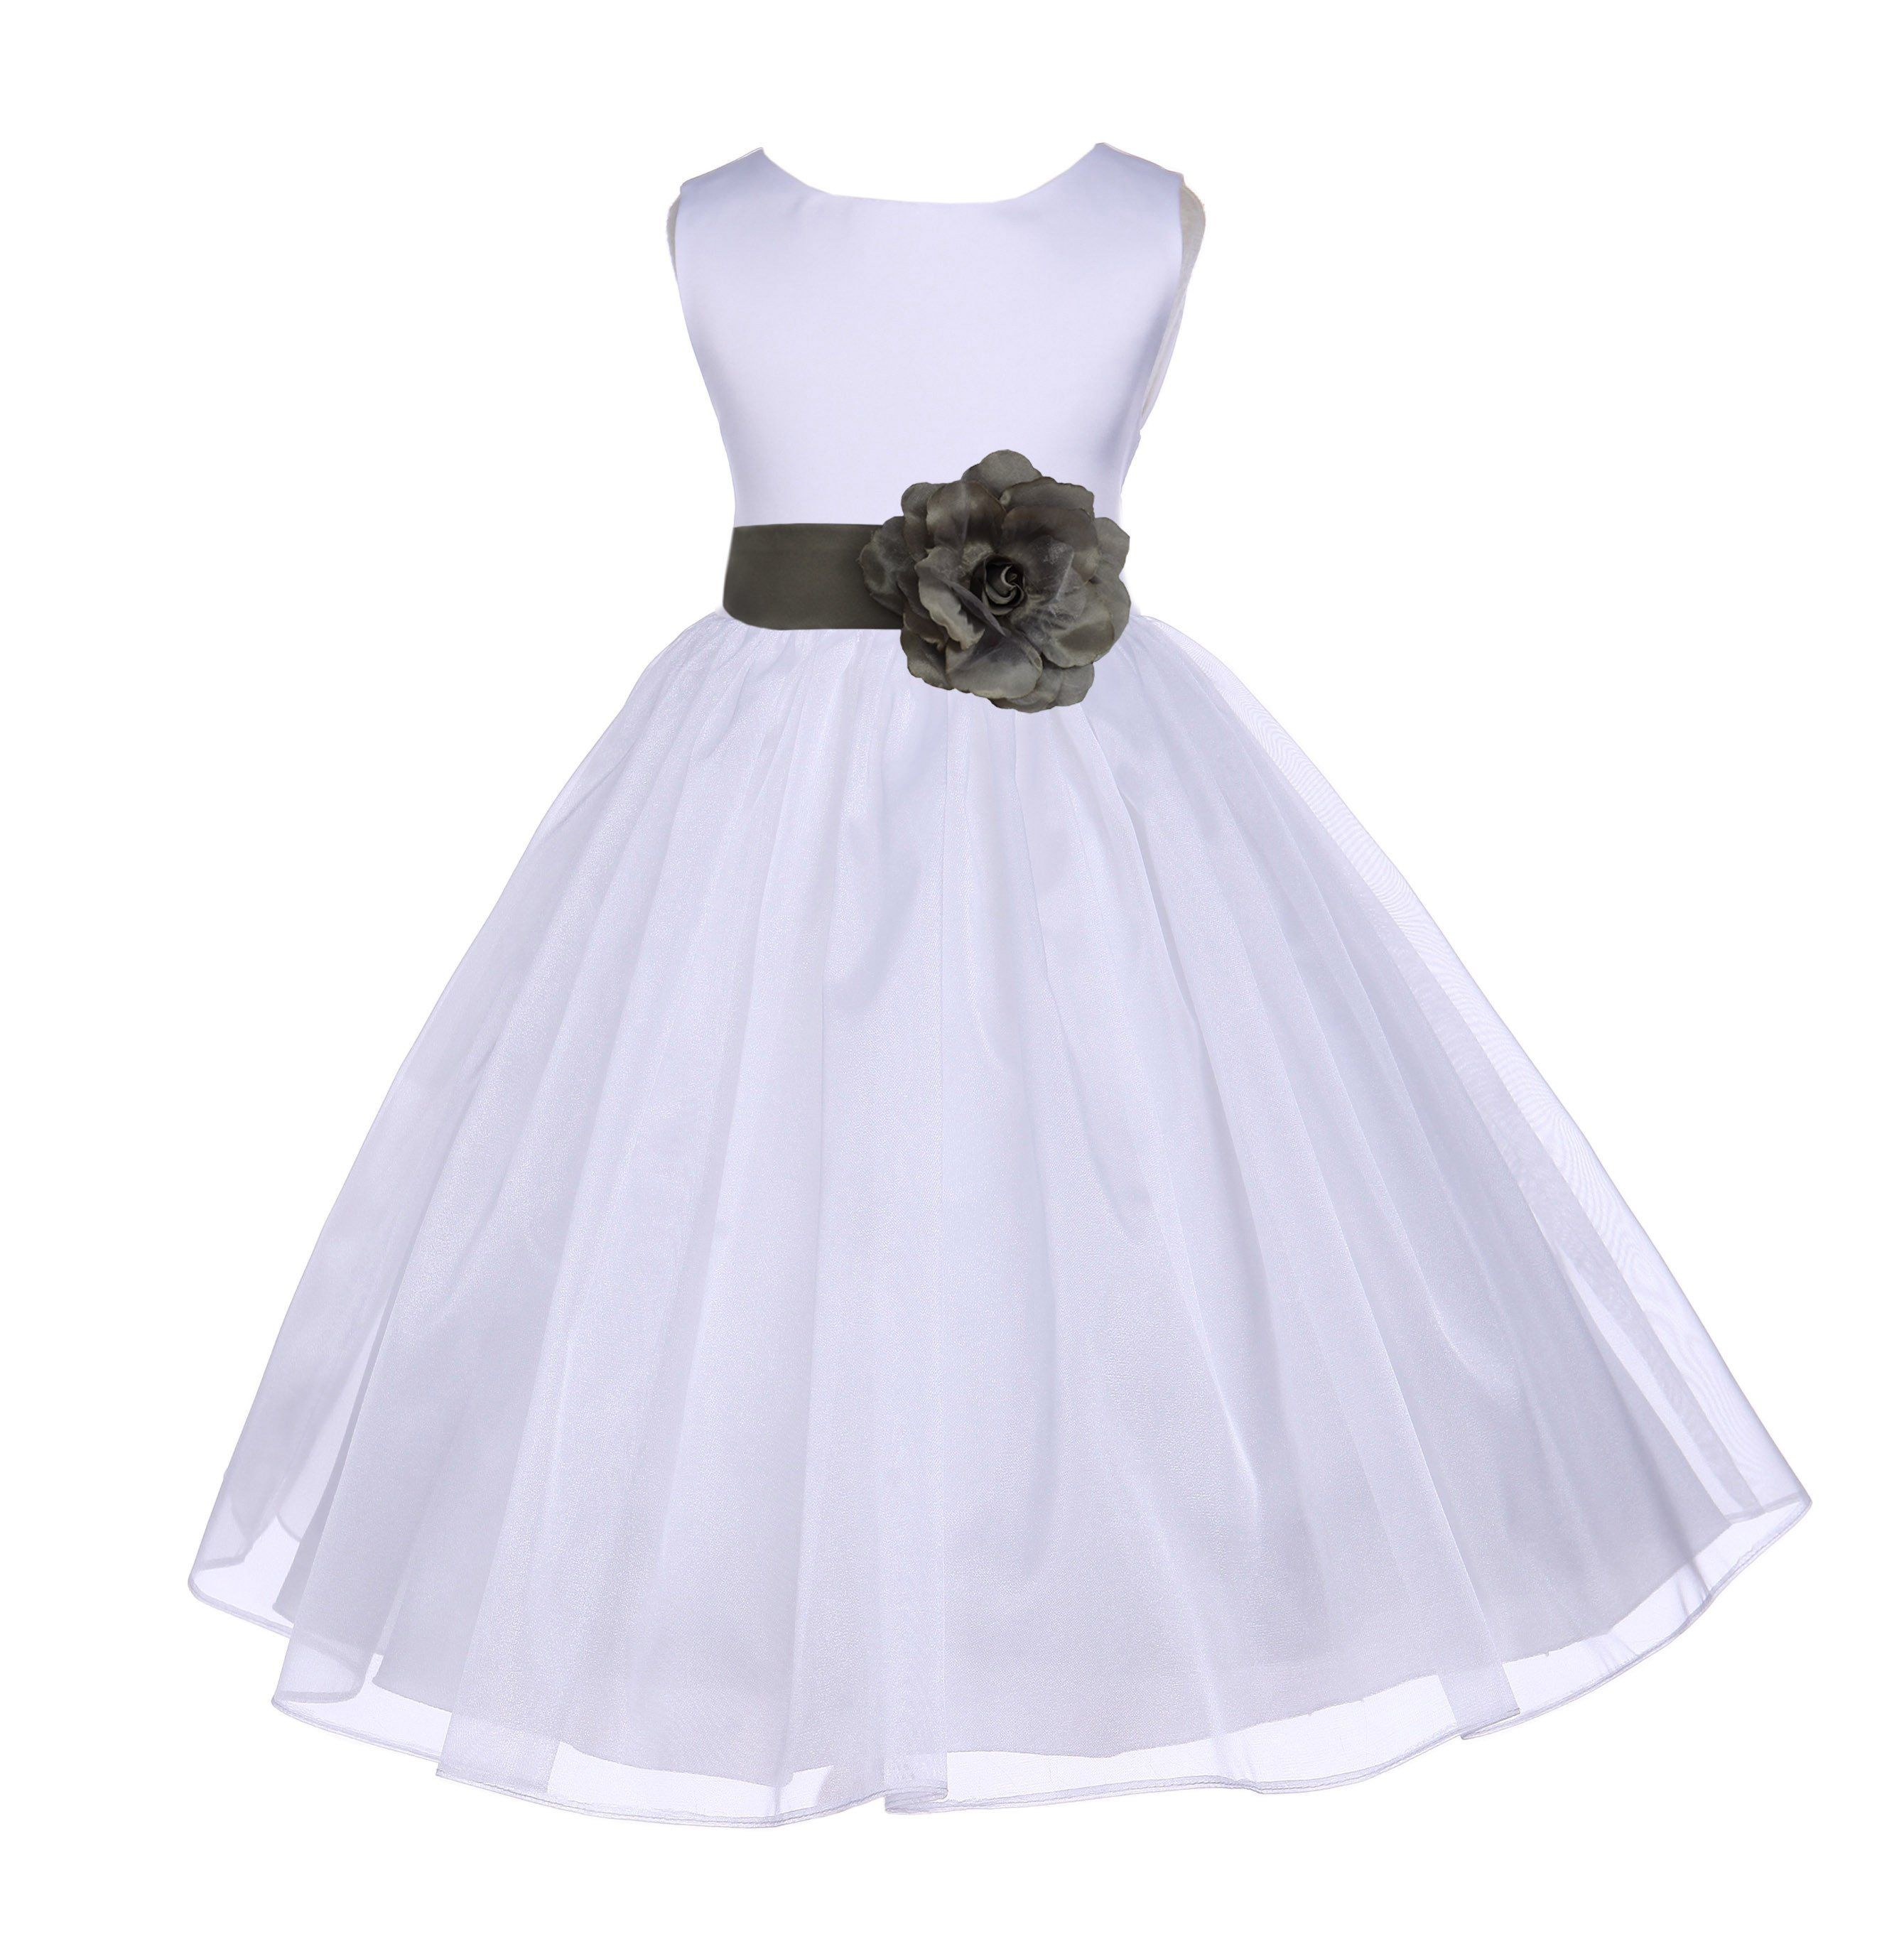 68c81c6006f We used an additional petticoat for the picture that is not included with  the dress. - Material  Stunning and Elegant Shimmering Poly Satin   Satin  Lining ...